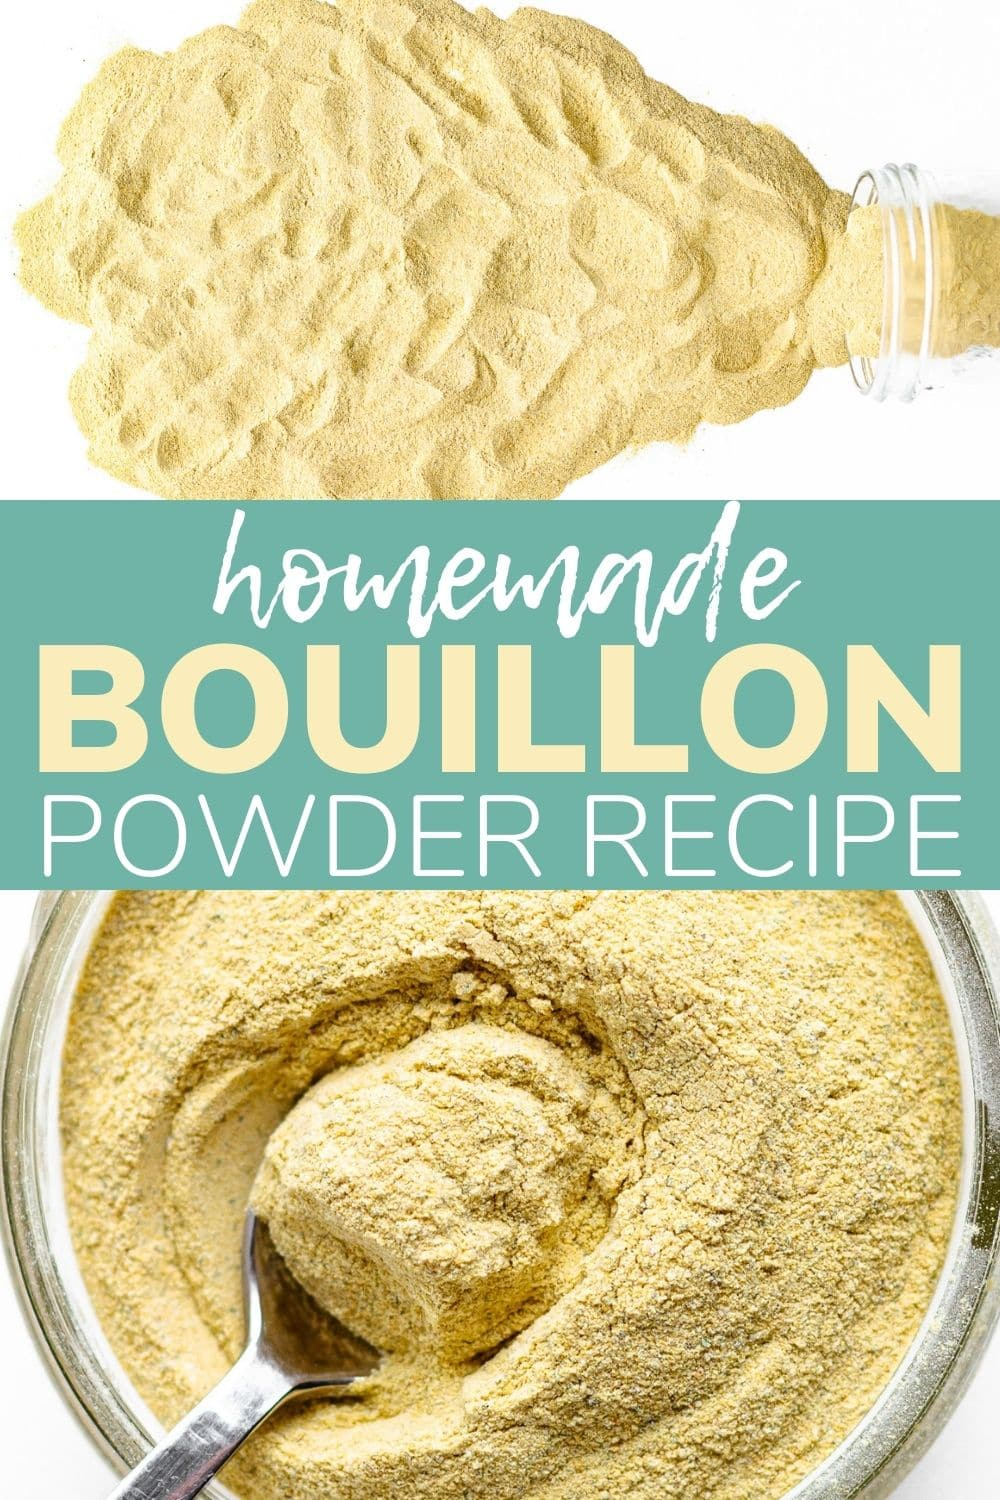 """Collage graphic showing pictures of bouillon powder with text overlay """"Homemade Bouillon Powder Recipe""""."""